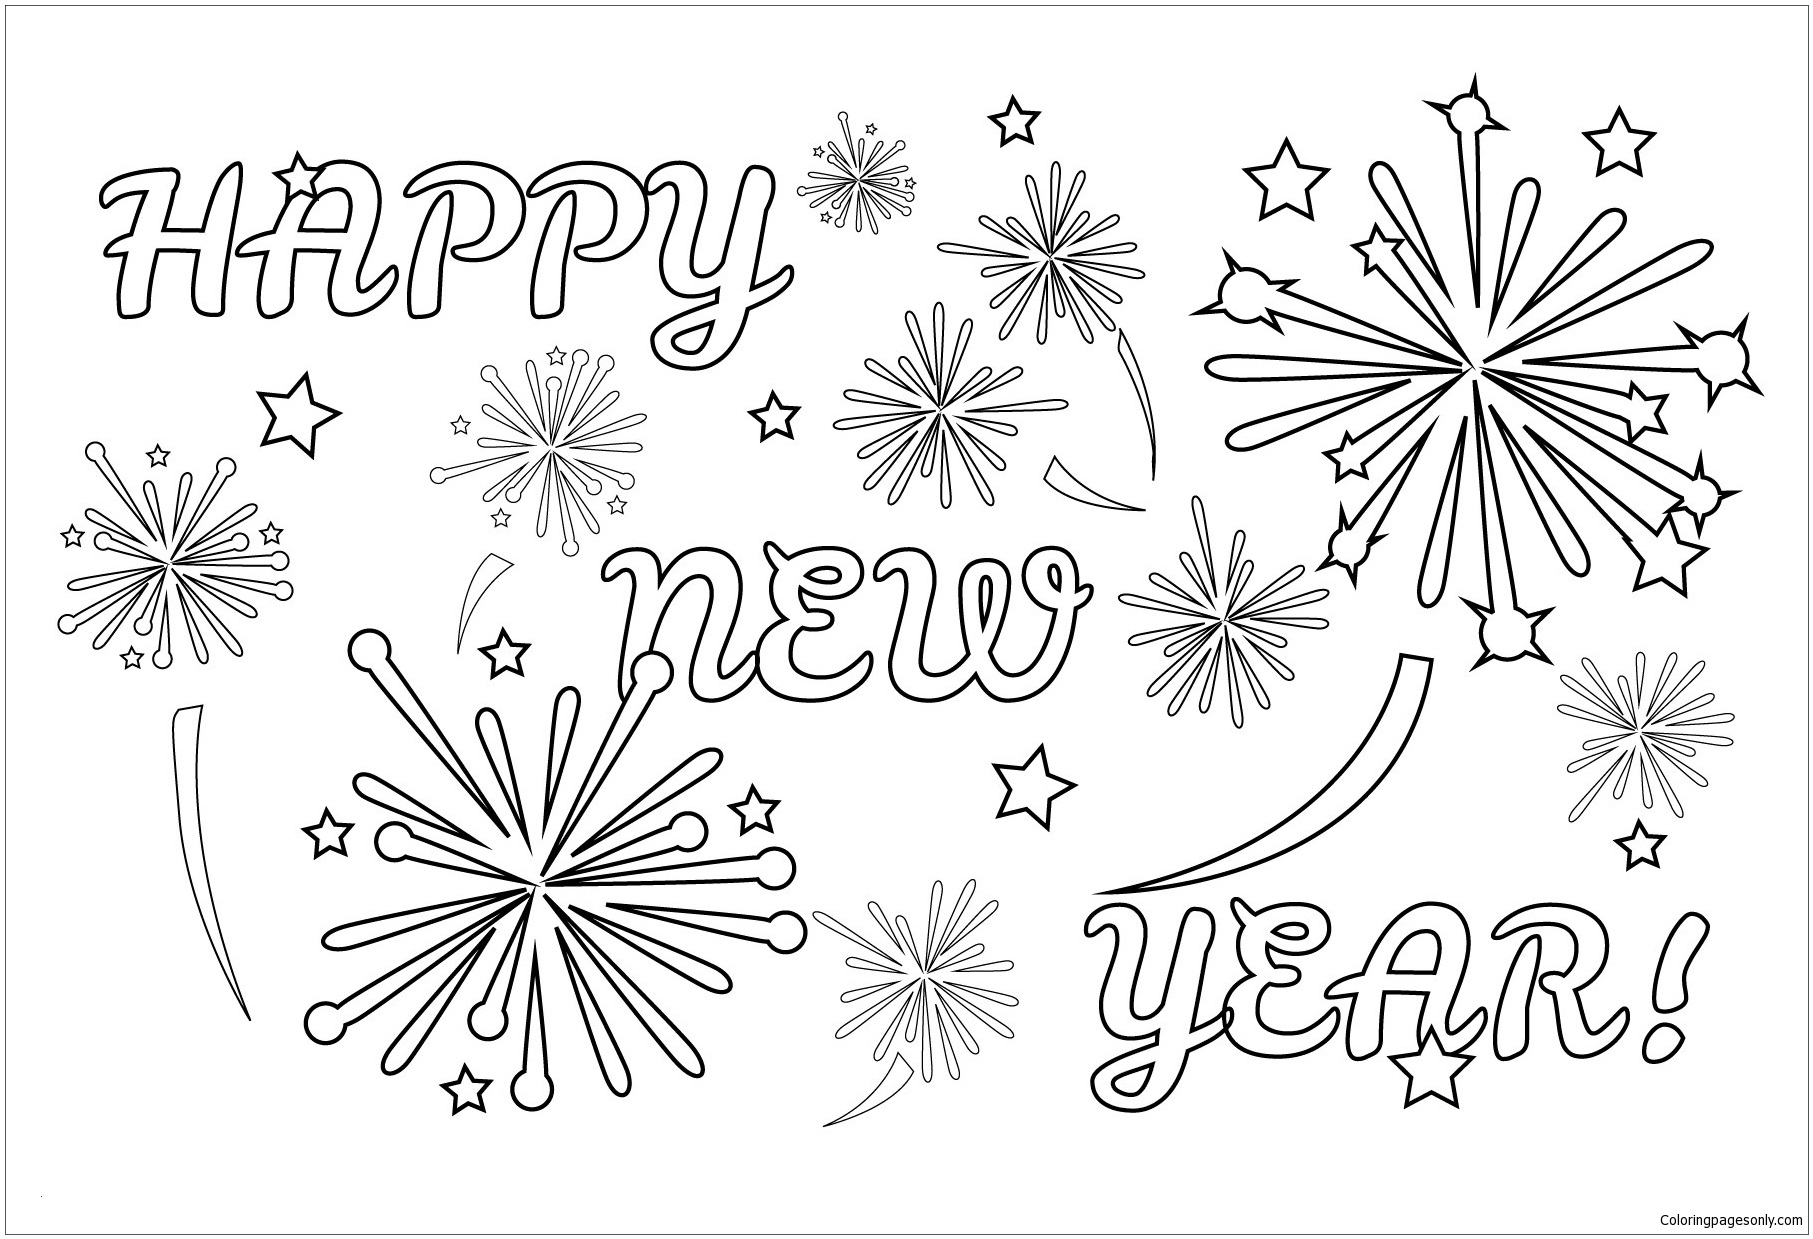 fireworks coloring page firework coloring pages printable free coloring sheets page coloring fireworks